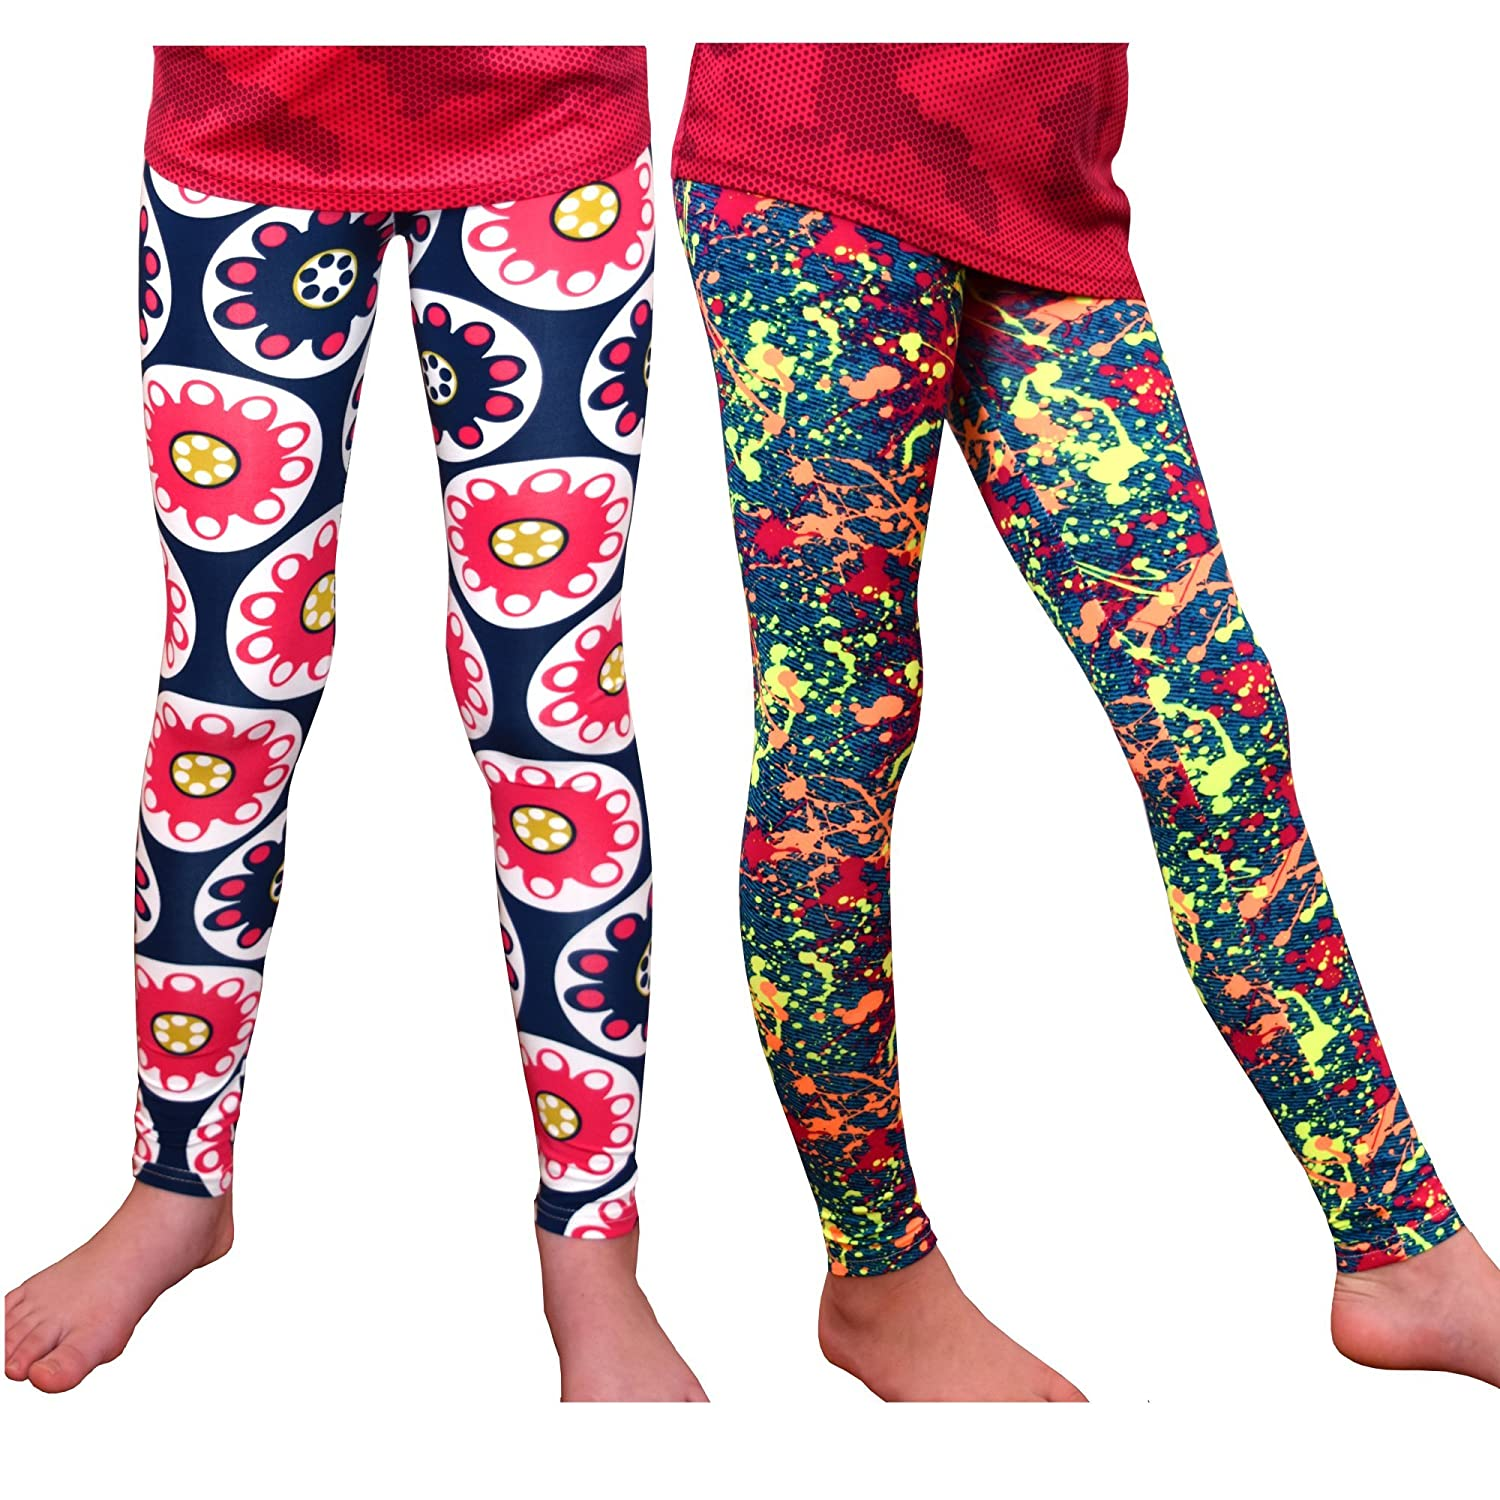 Syleia Girl High Rise Leggings Set of 2 Bright Patterns Great Stretch